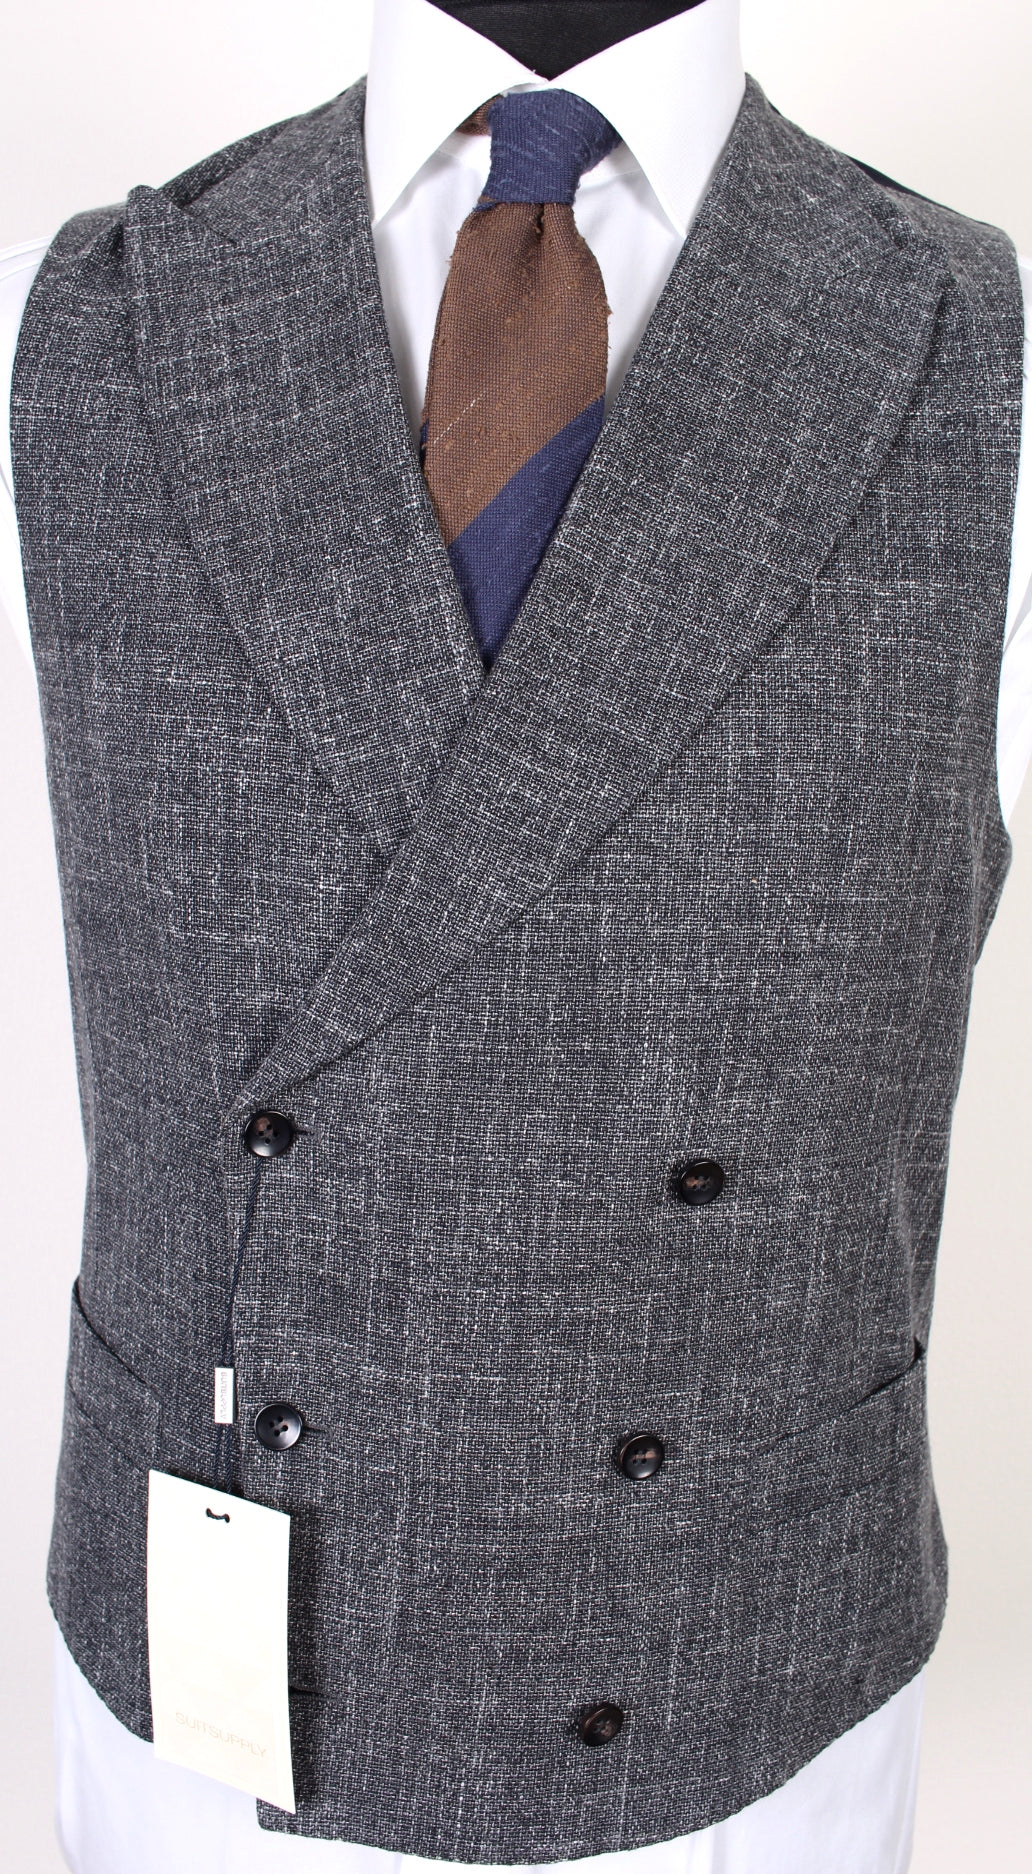 New Suitsupply PIERRE Gray Plain 100% Cotton DB Waistcoat - Size 36R, 38R, 40R, 42R